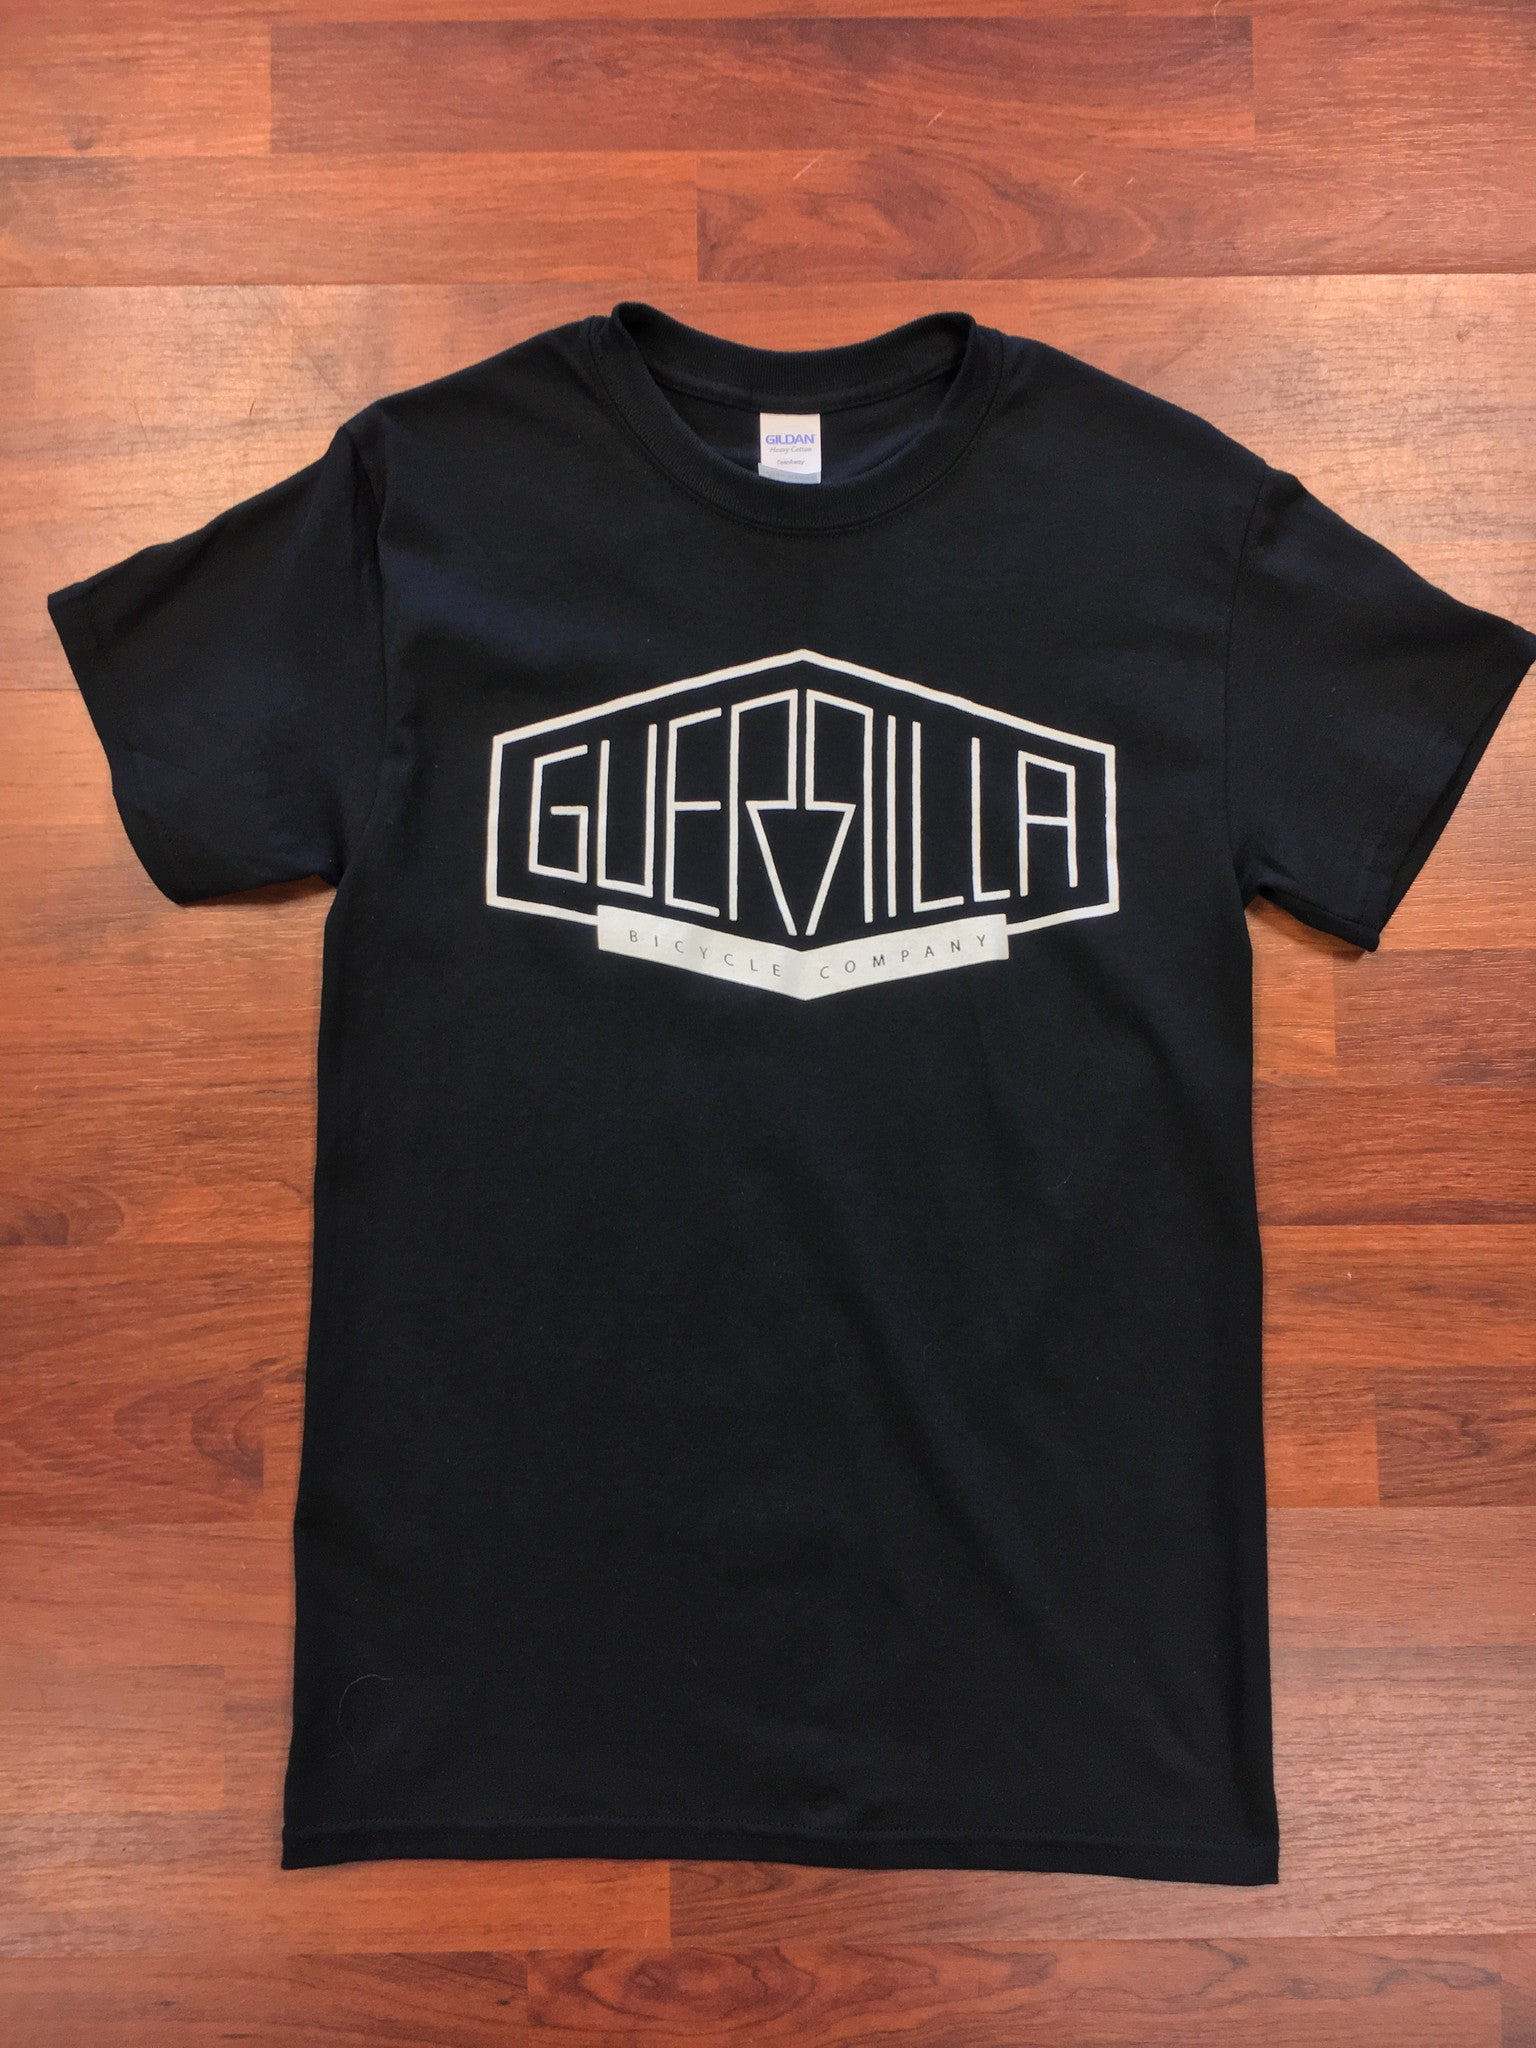 Guerrilla Black T-Shirt